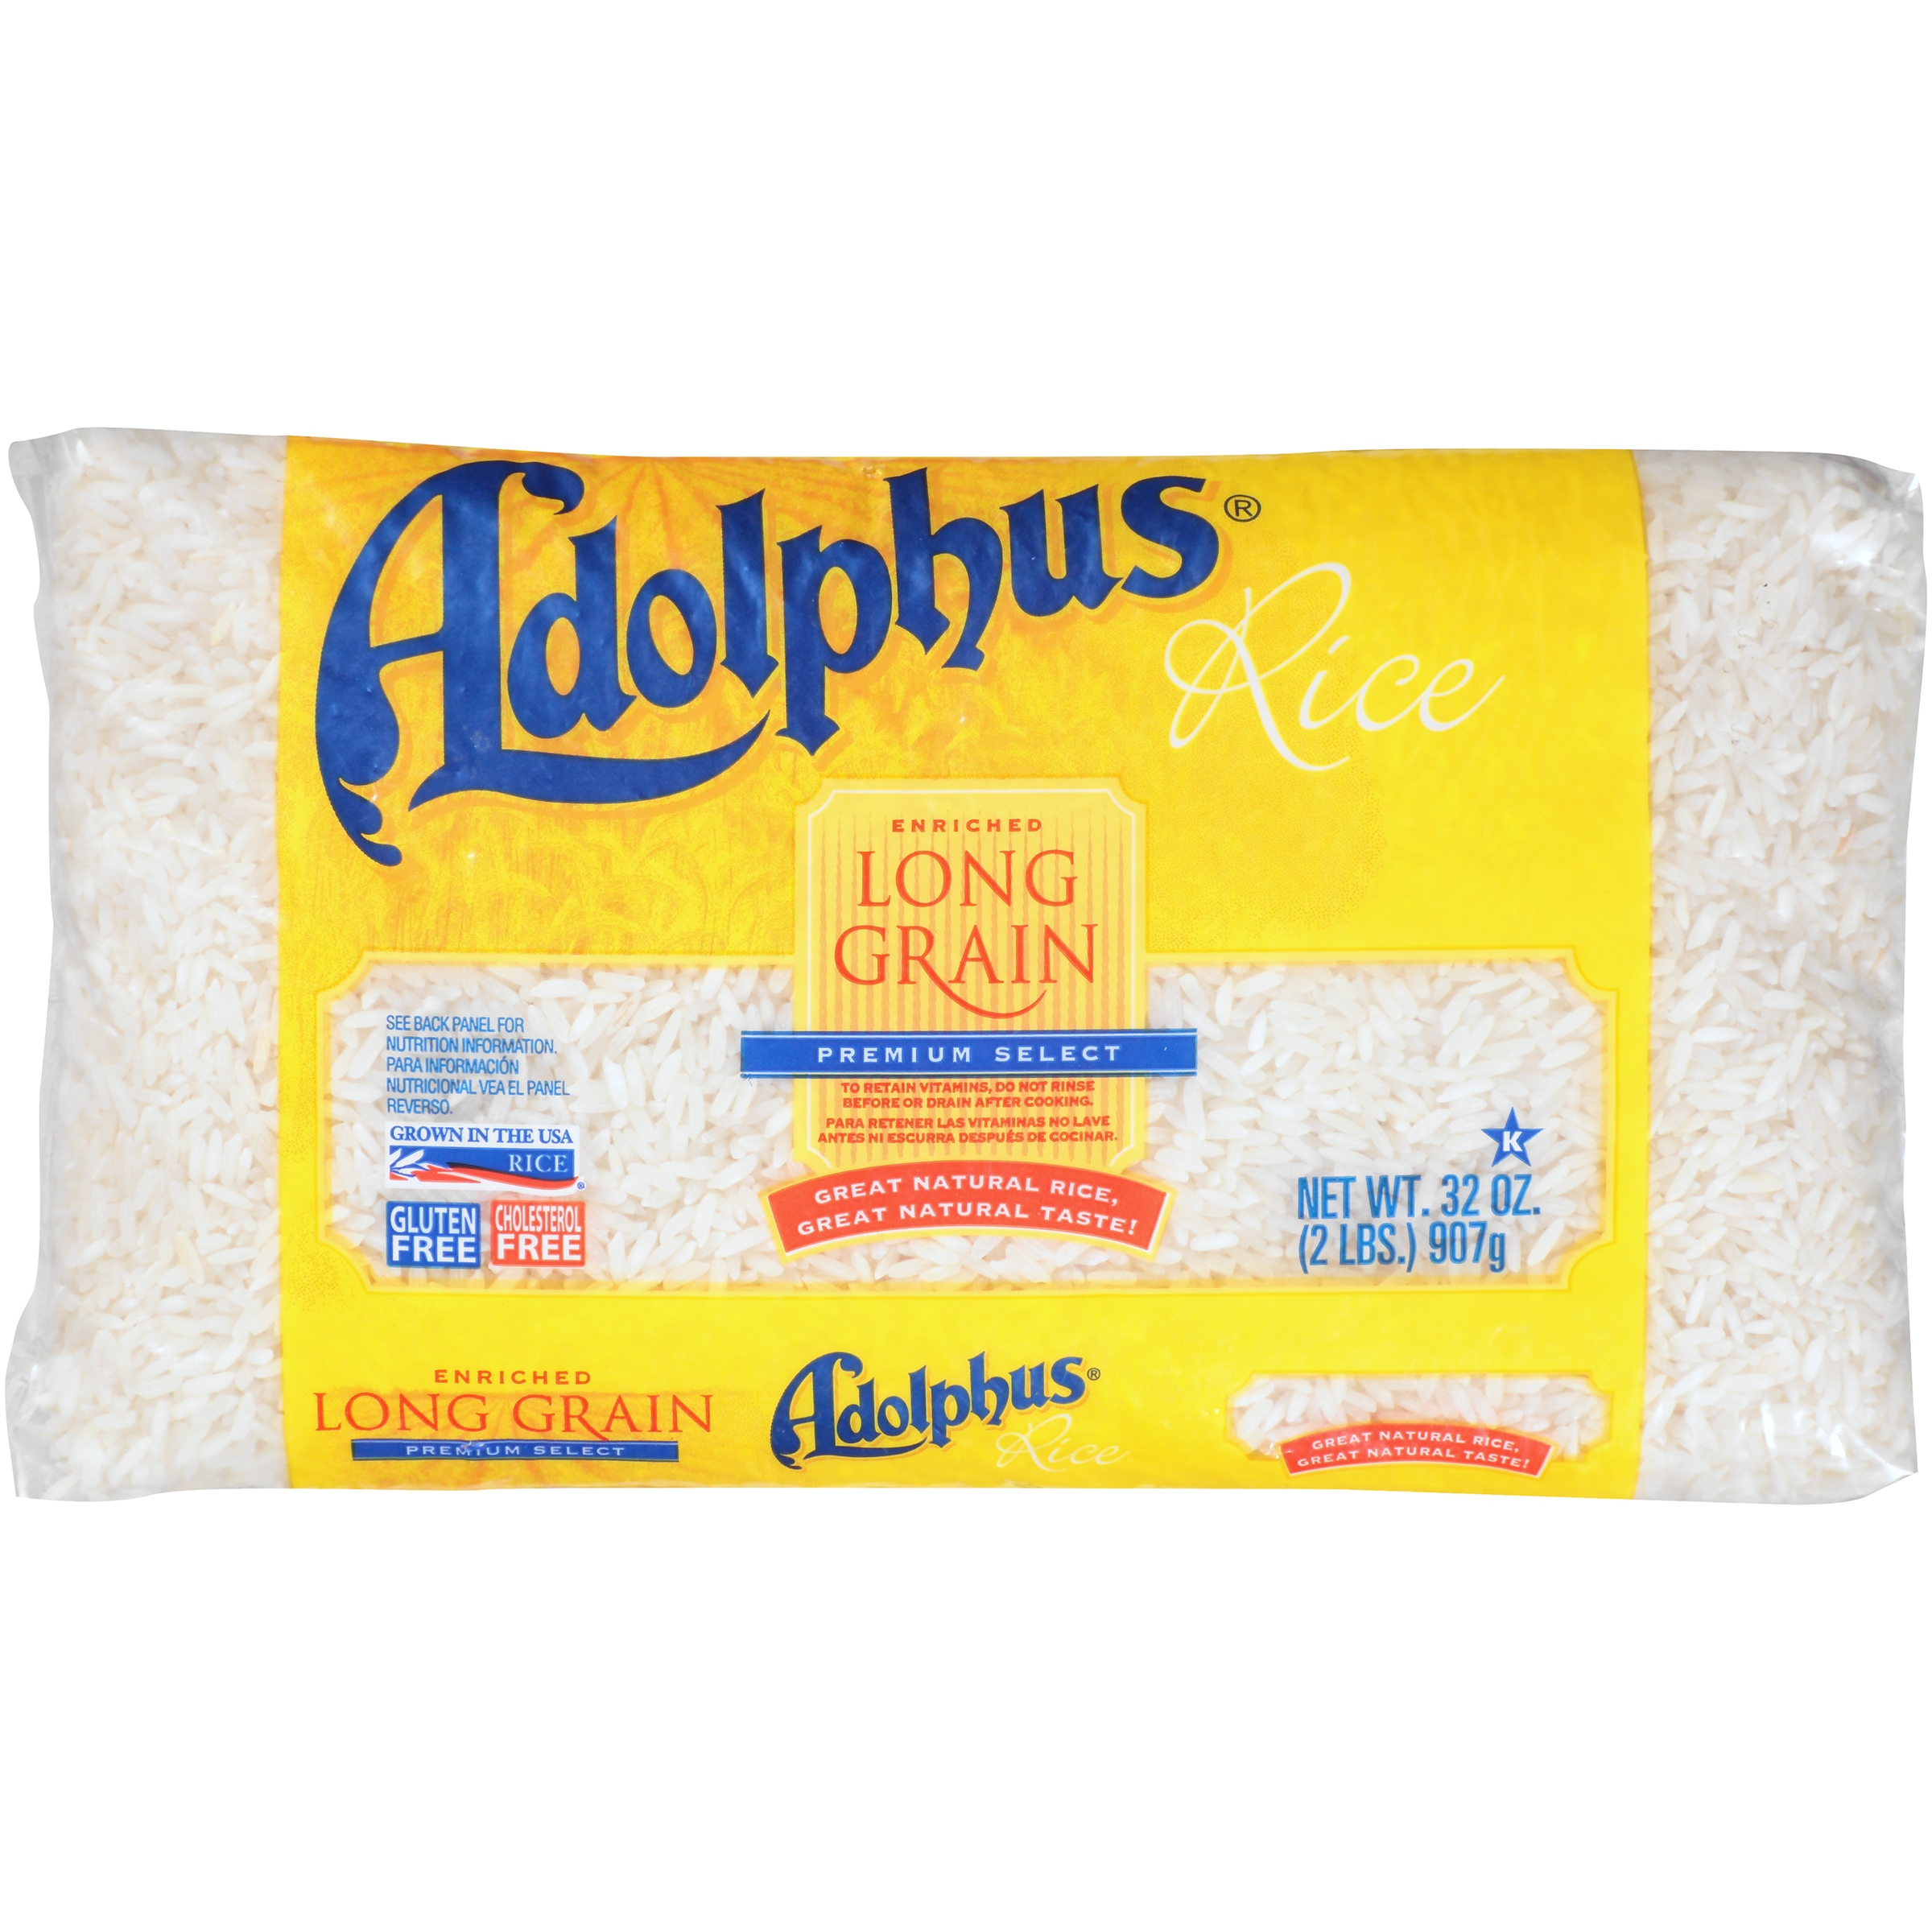 Image of Adolphus Long Grain Enriched Premium Sele ct Rice, 32 oz